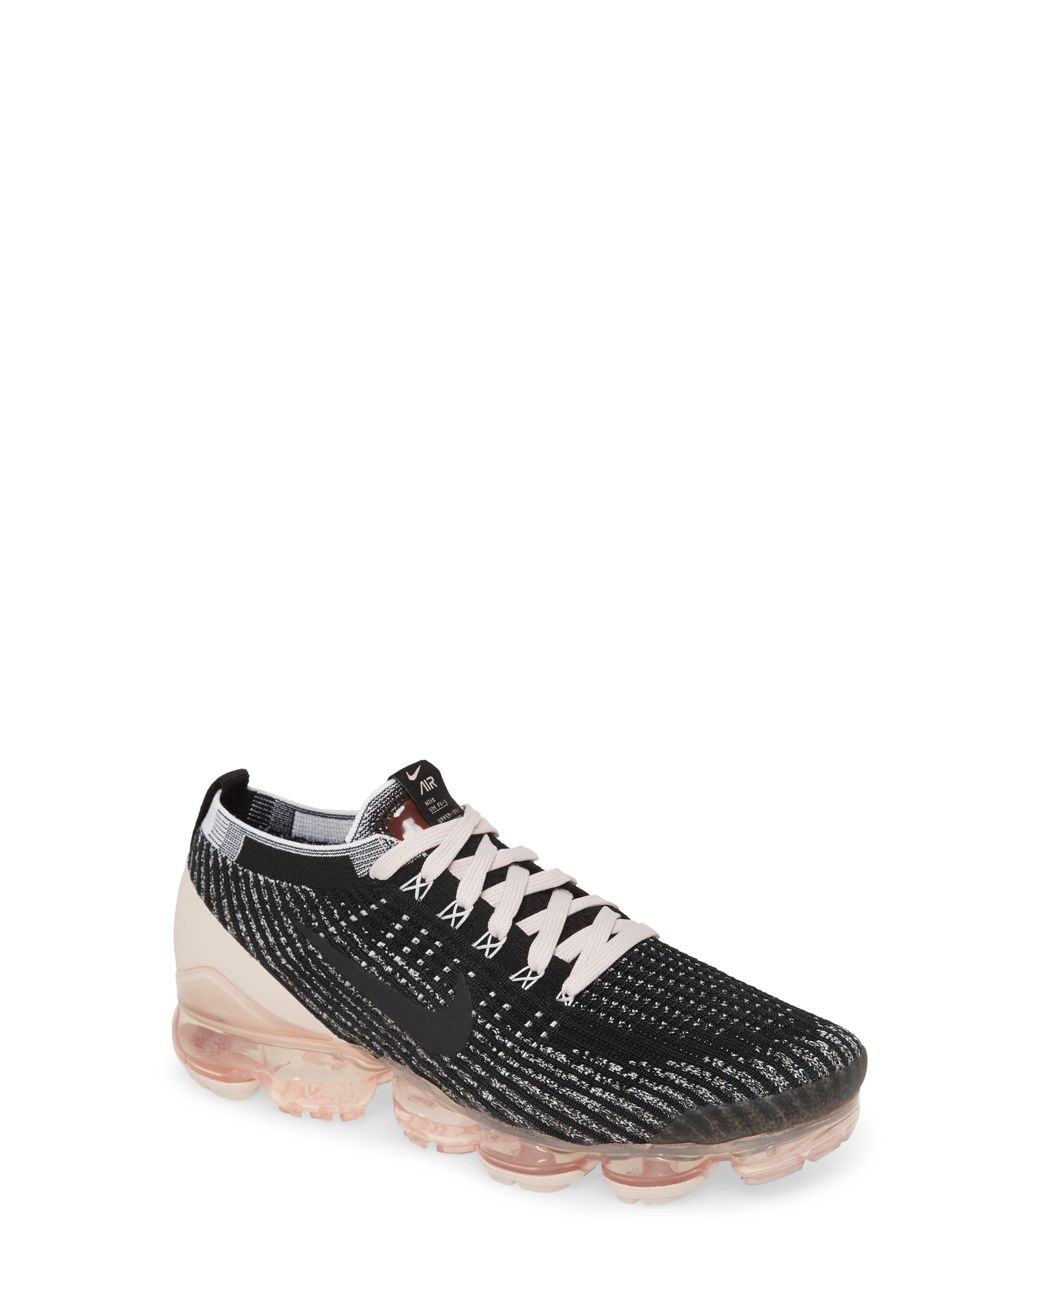 nike air vapormax flyknit 3 black barely rose